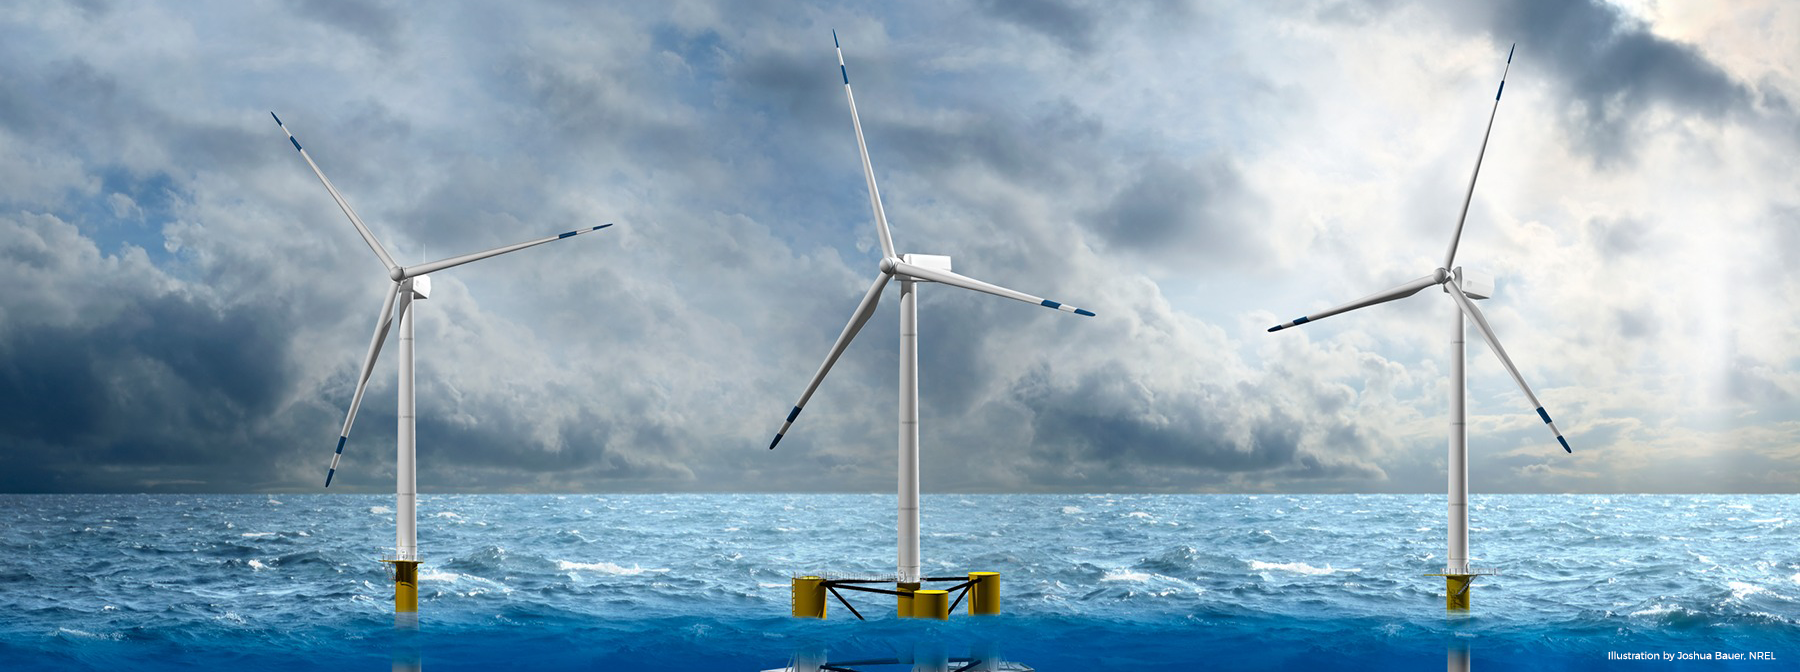 Offshore wind farm photograph